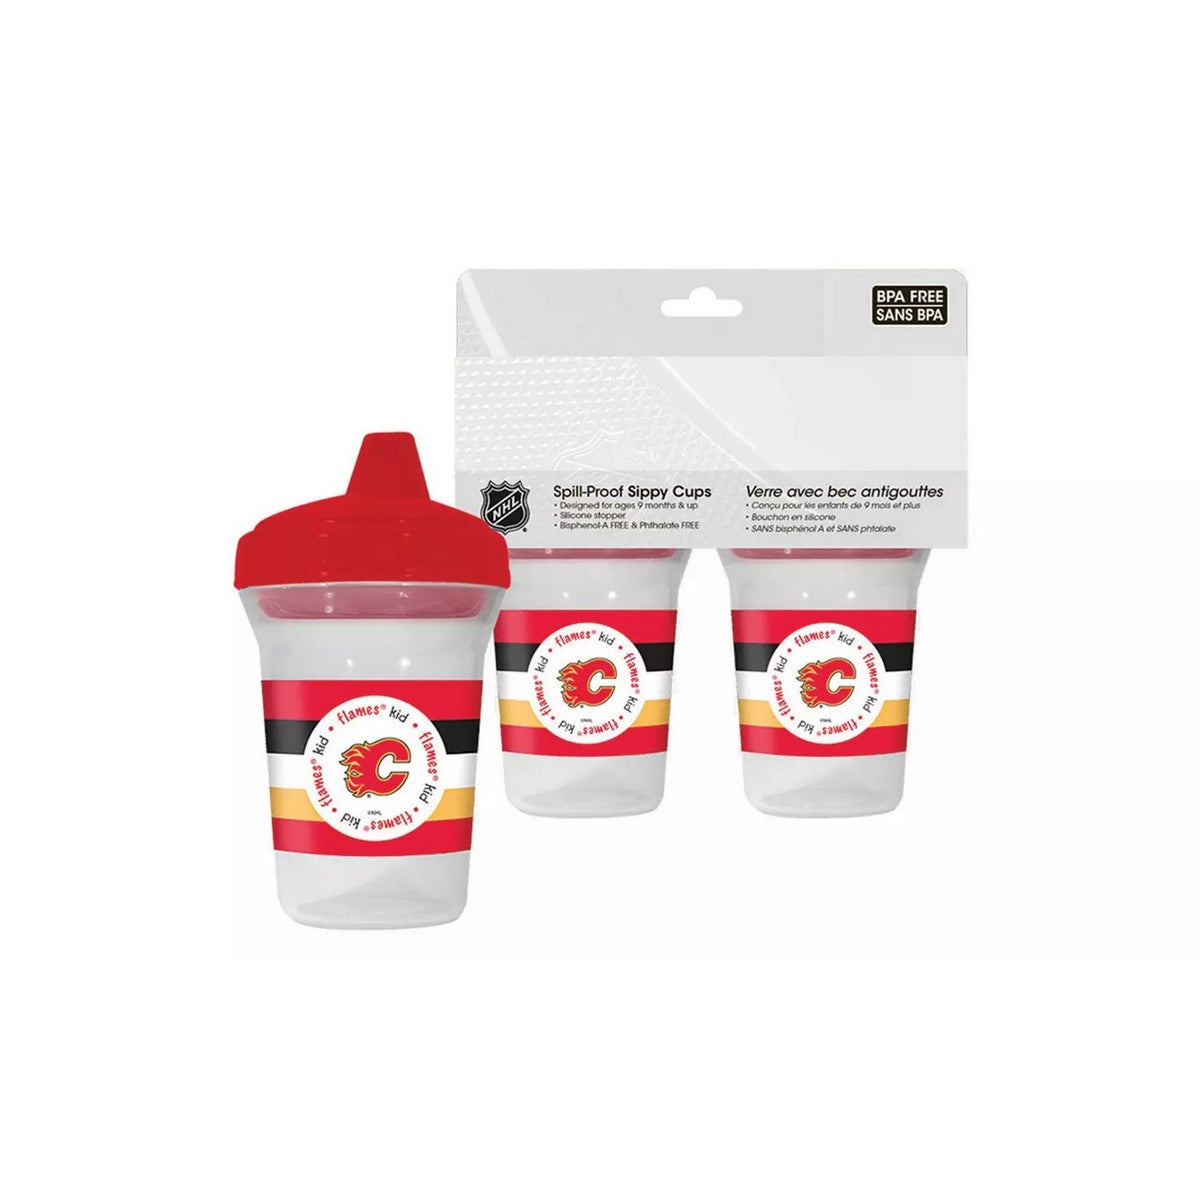 🏒 NHL Flames Spill-Proof Sippy Cups  (2-Pack)